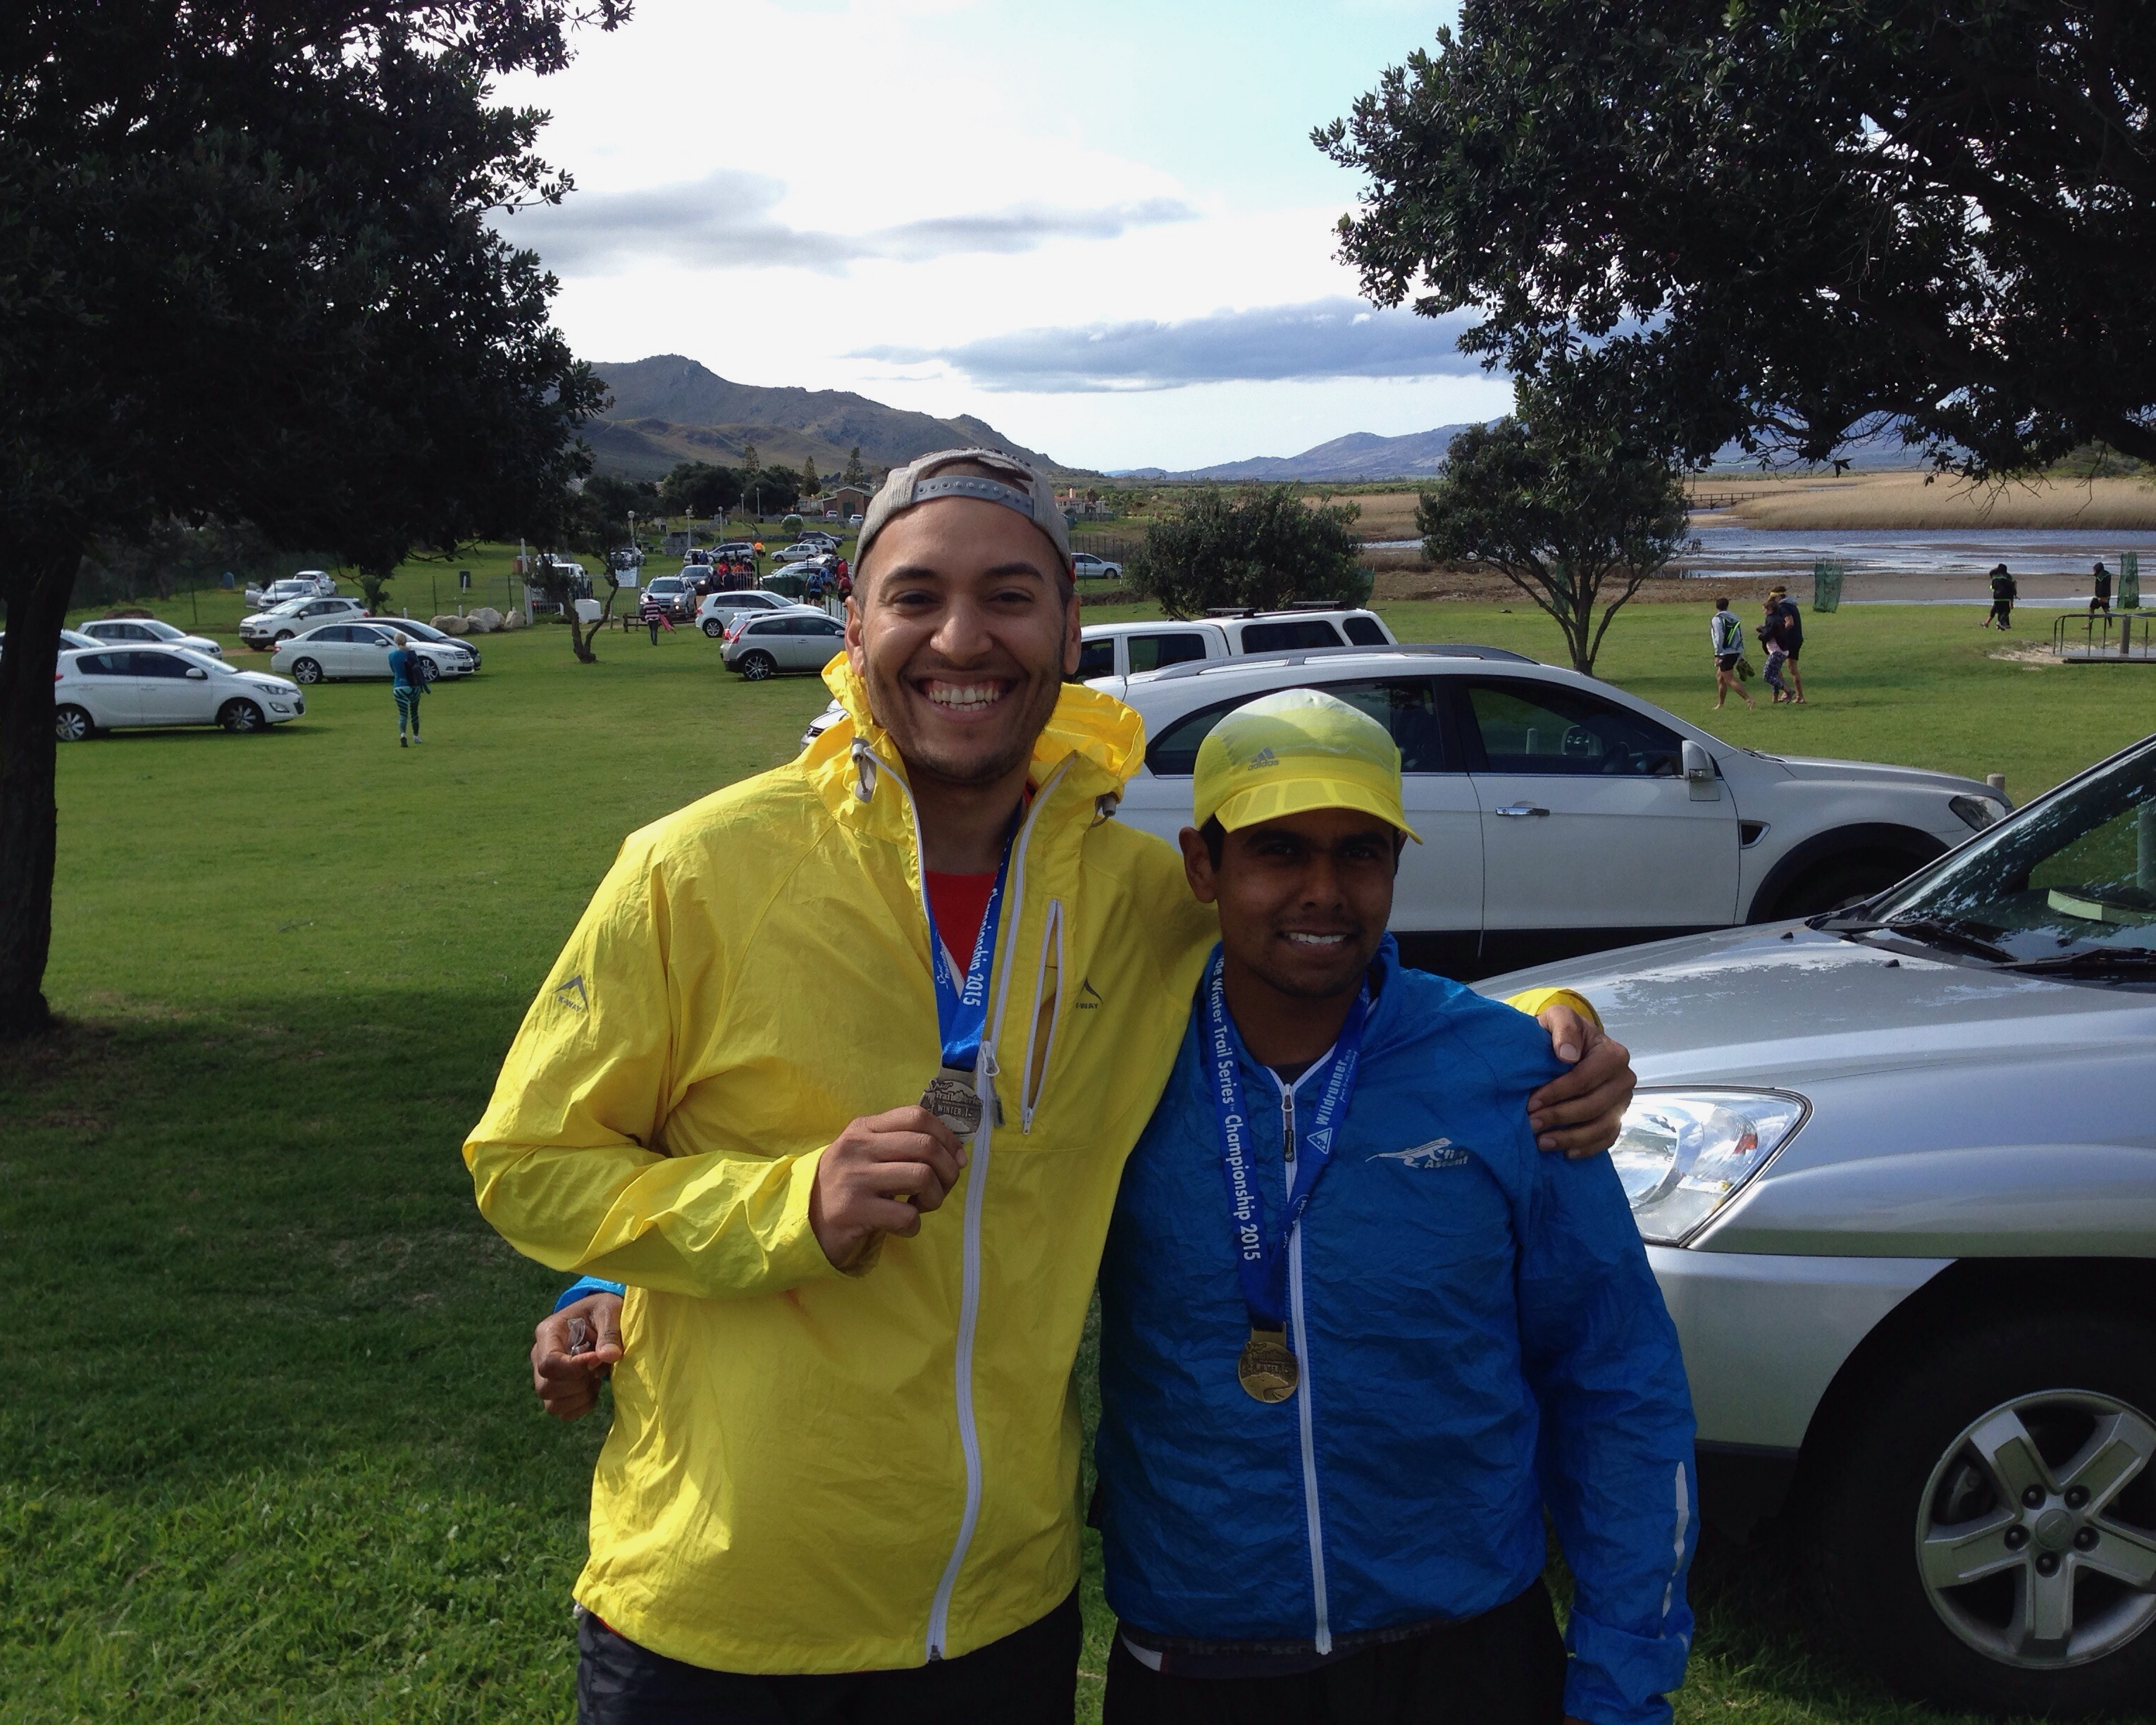 Dan (the man) and me with our series medals